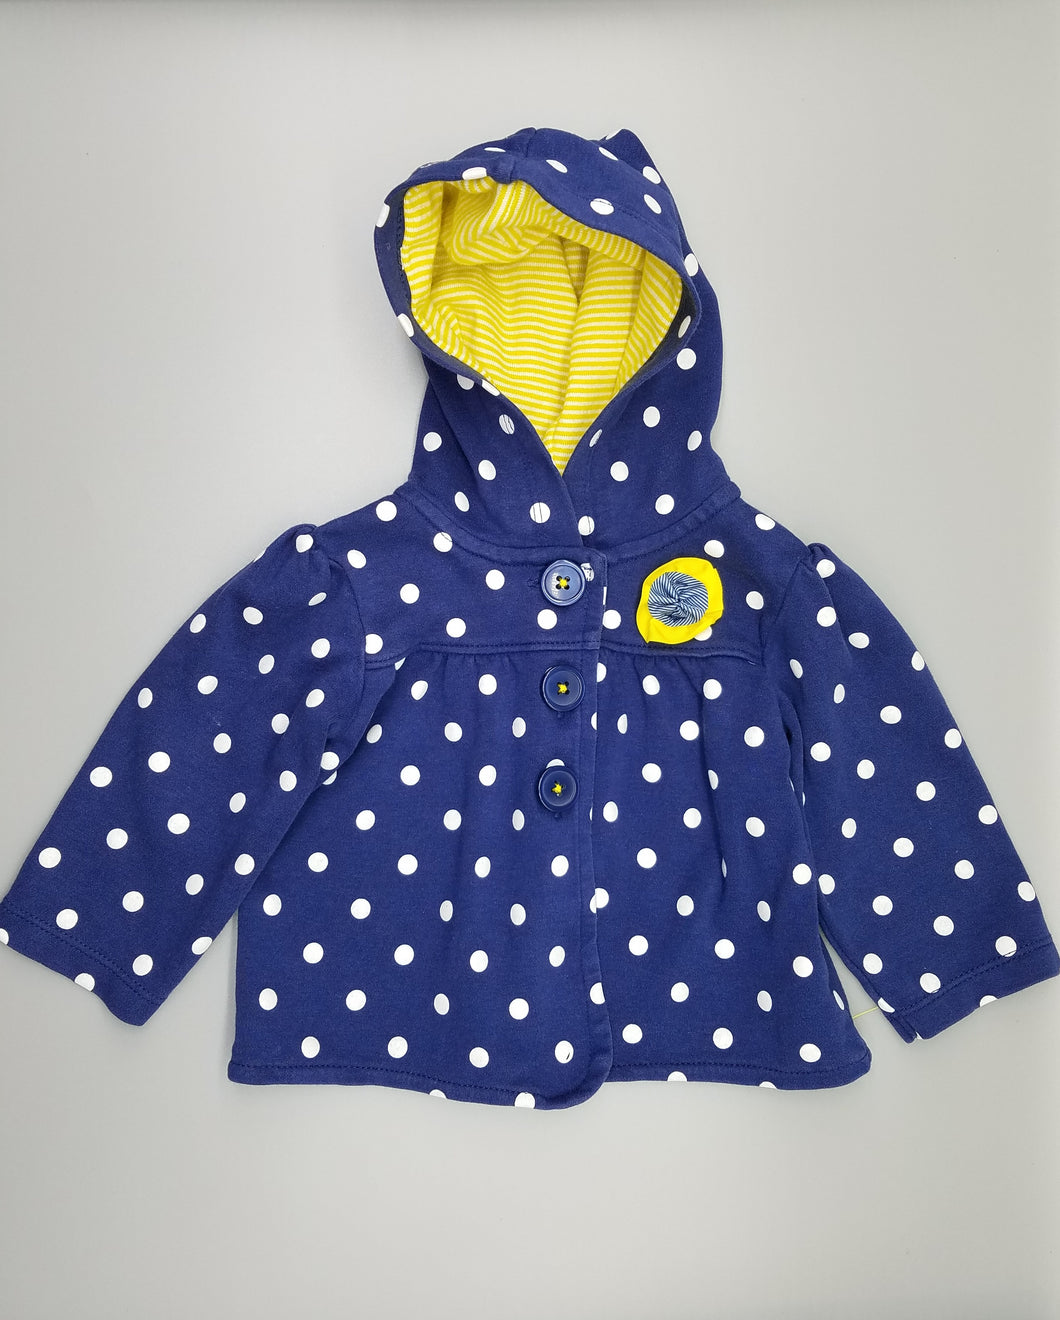 CC Blue Polka Dot Three-Button Sweater 12M